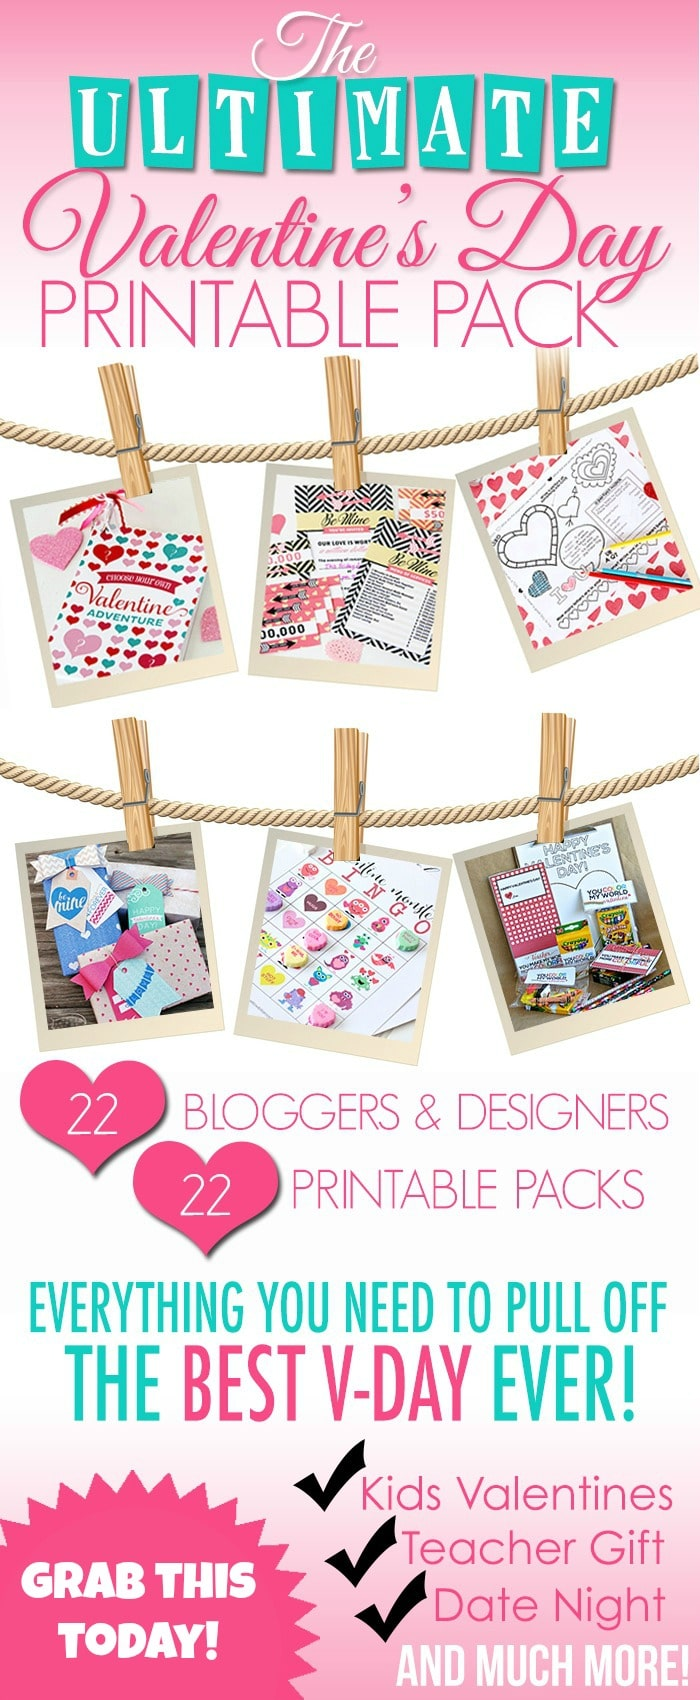 Valentines Day Printable Pack from Somewhat Simple